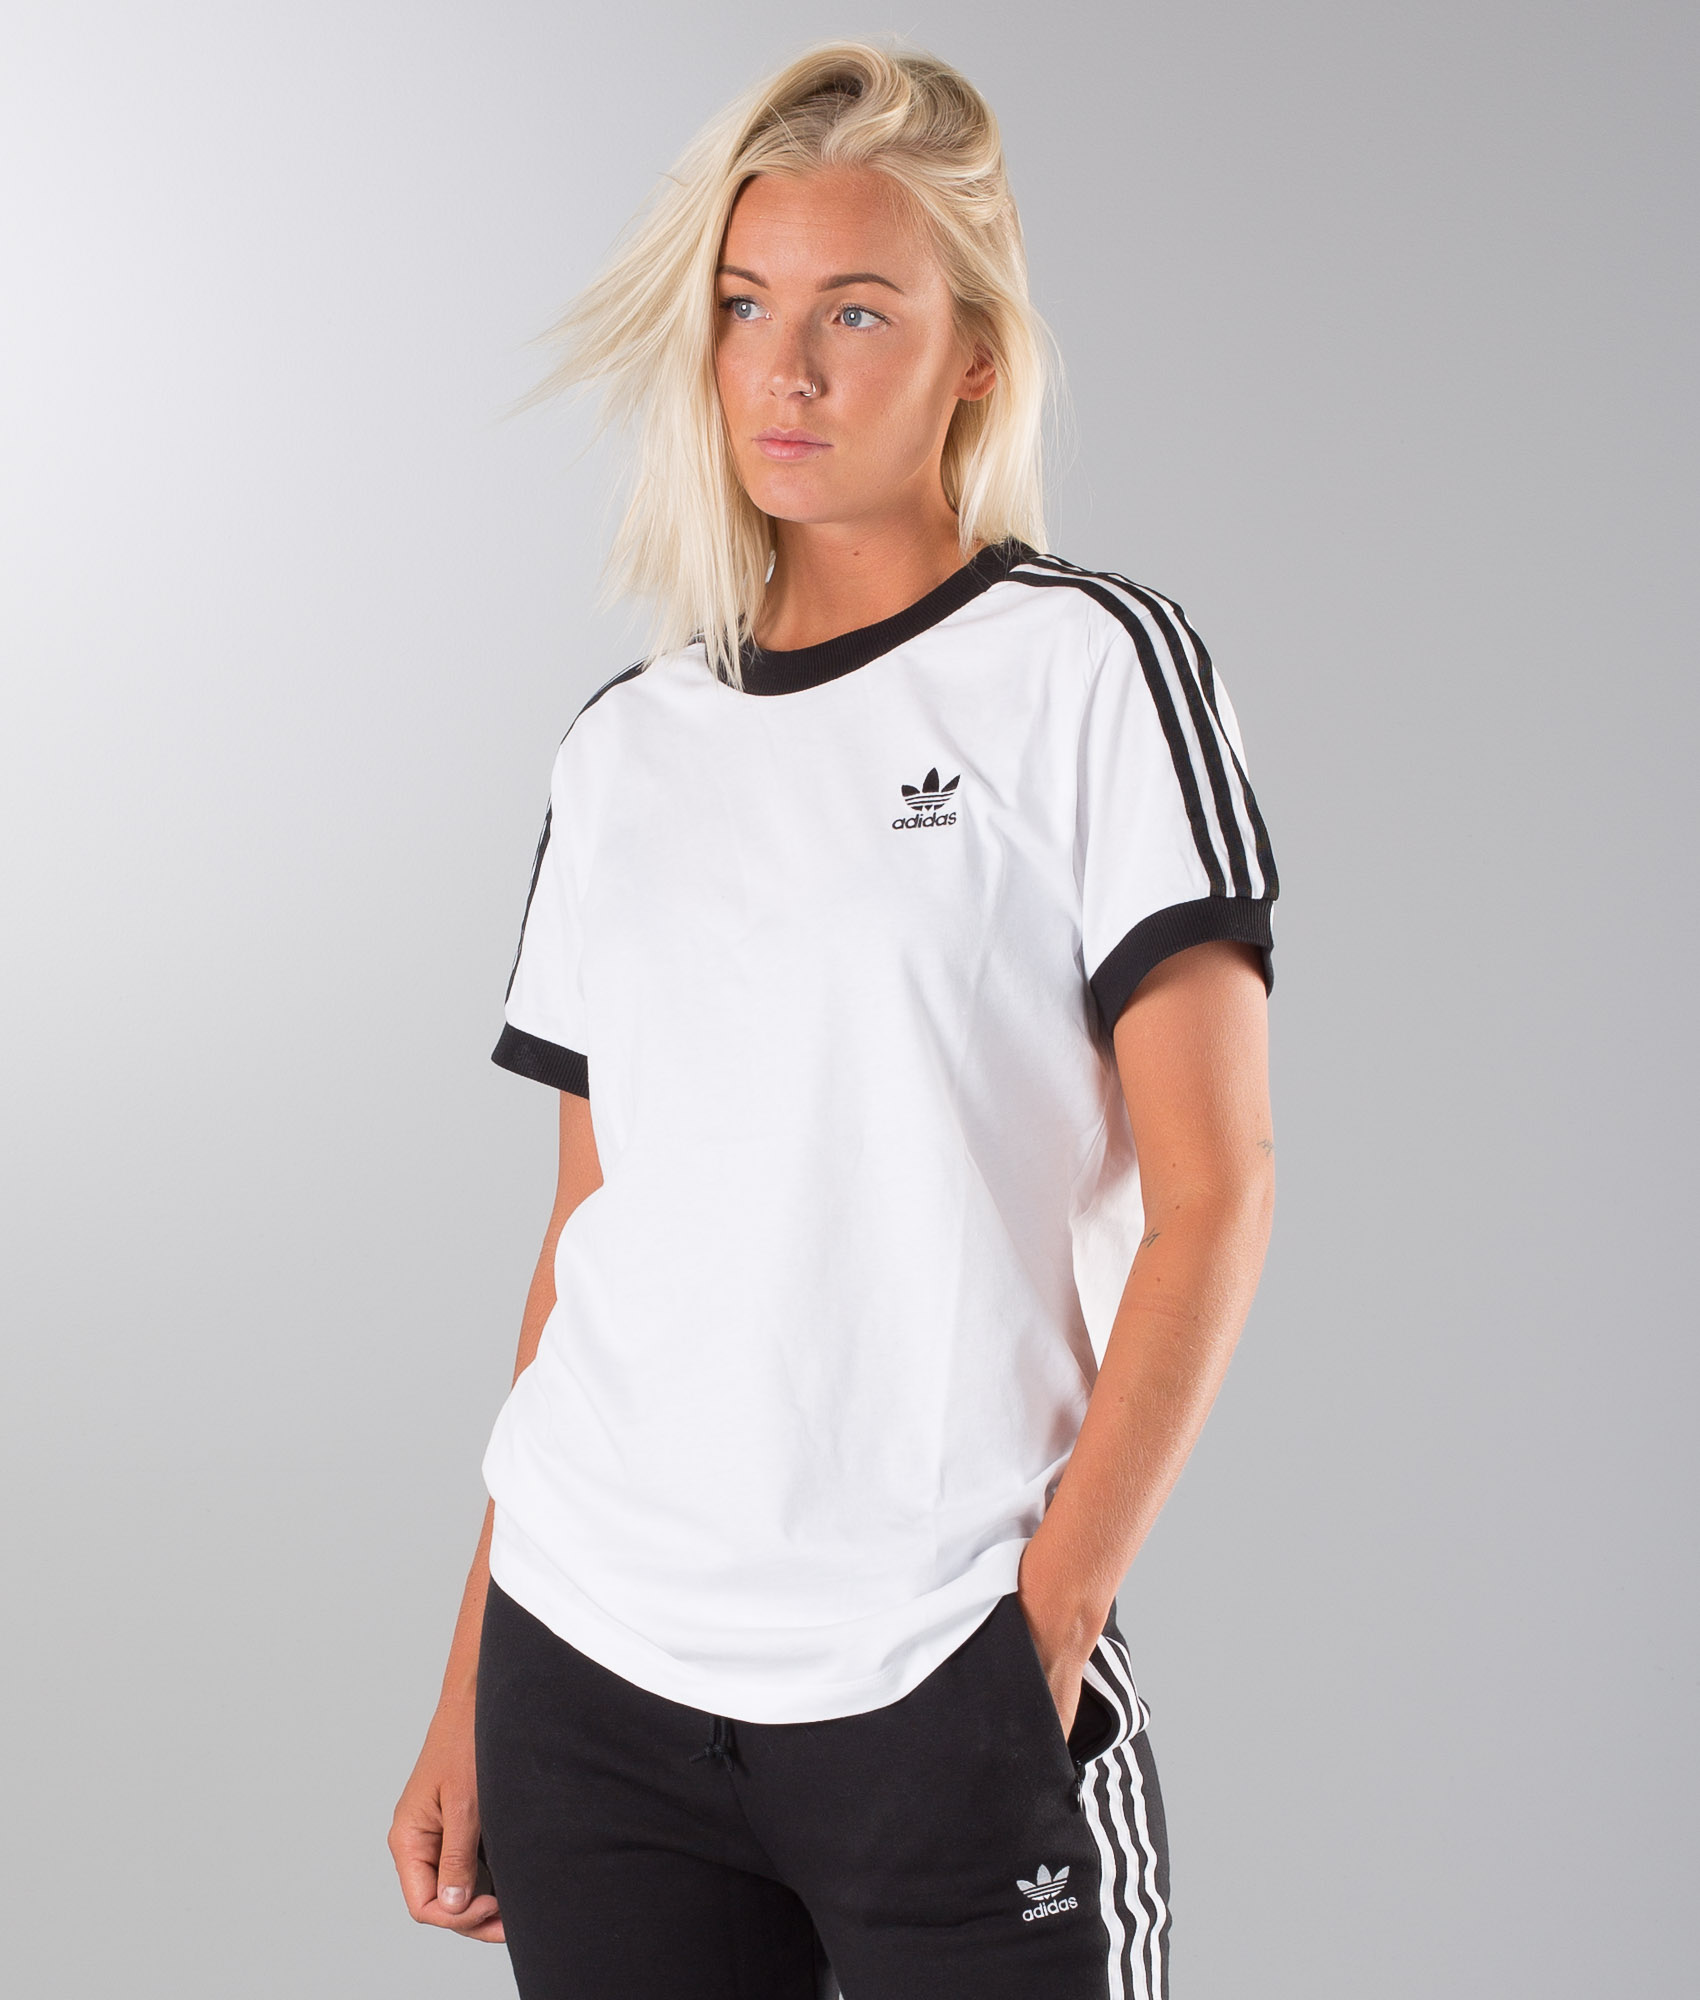 Adidas Originals 3 Stripes T shirt White